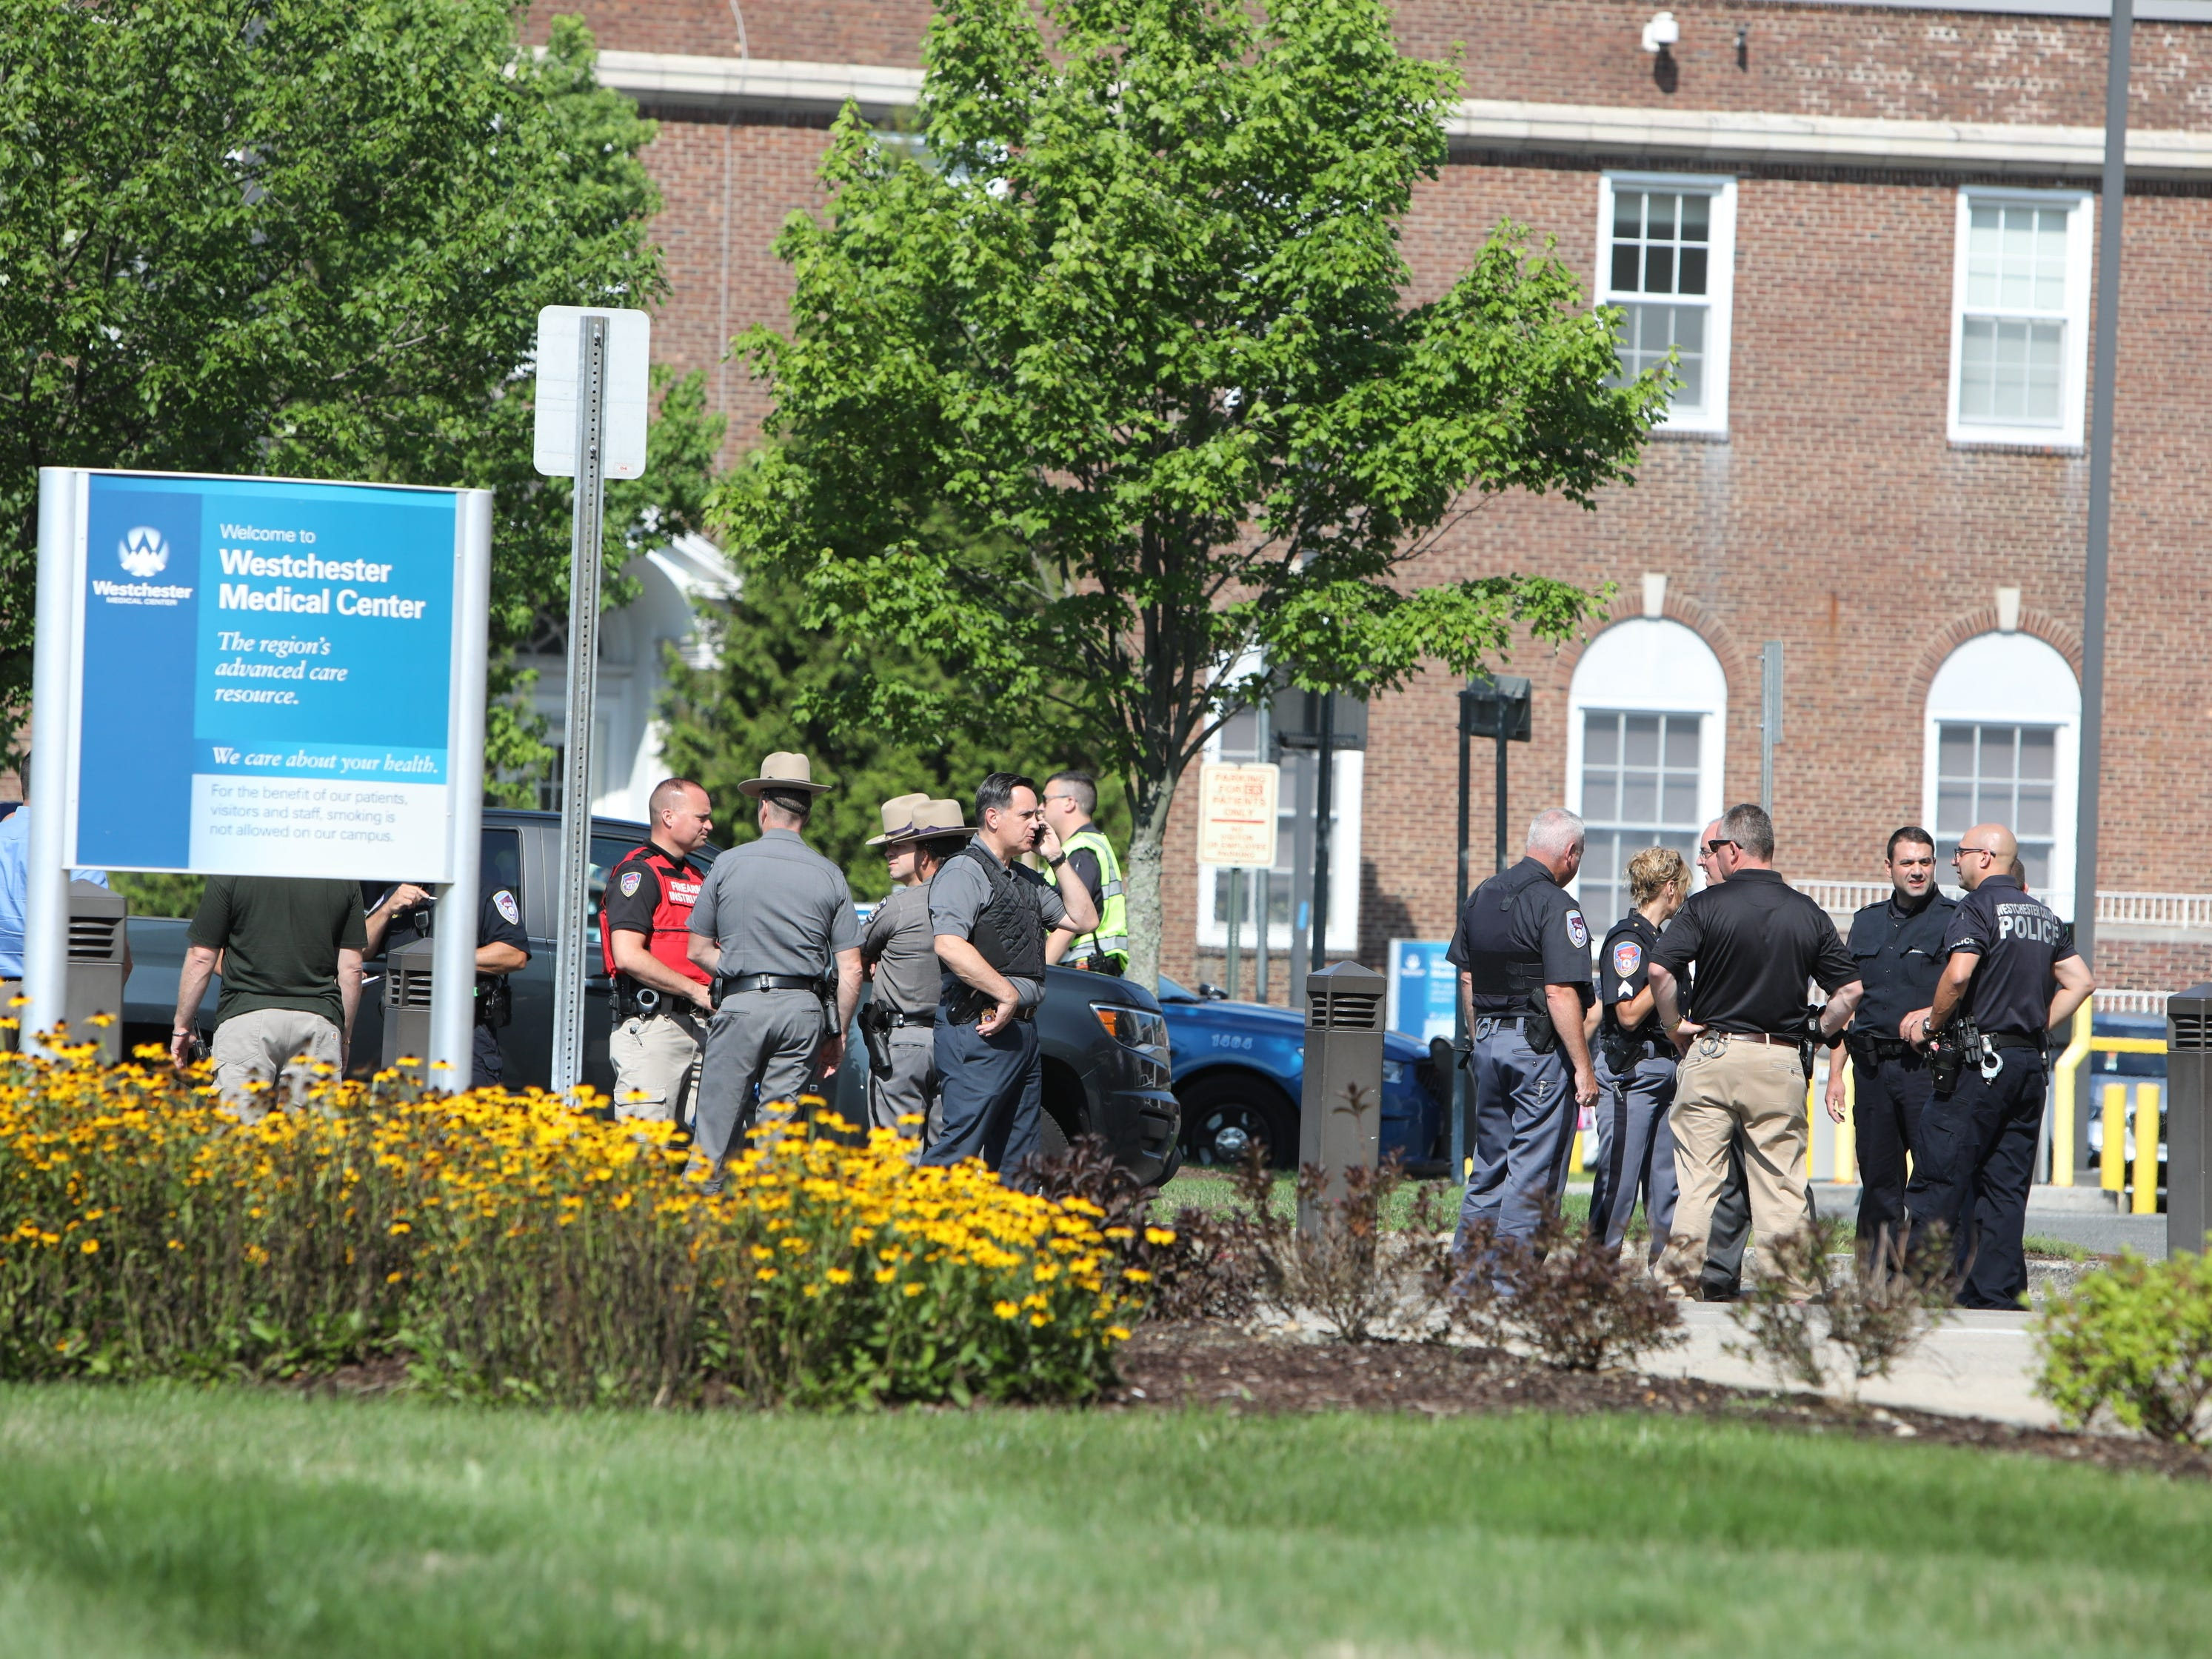 Police at Westchester Medical Center after a report of shots fired in the hospital in Valhalla, Wednesday, Aug. 8, 2018.